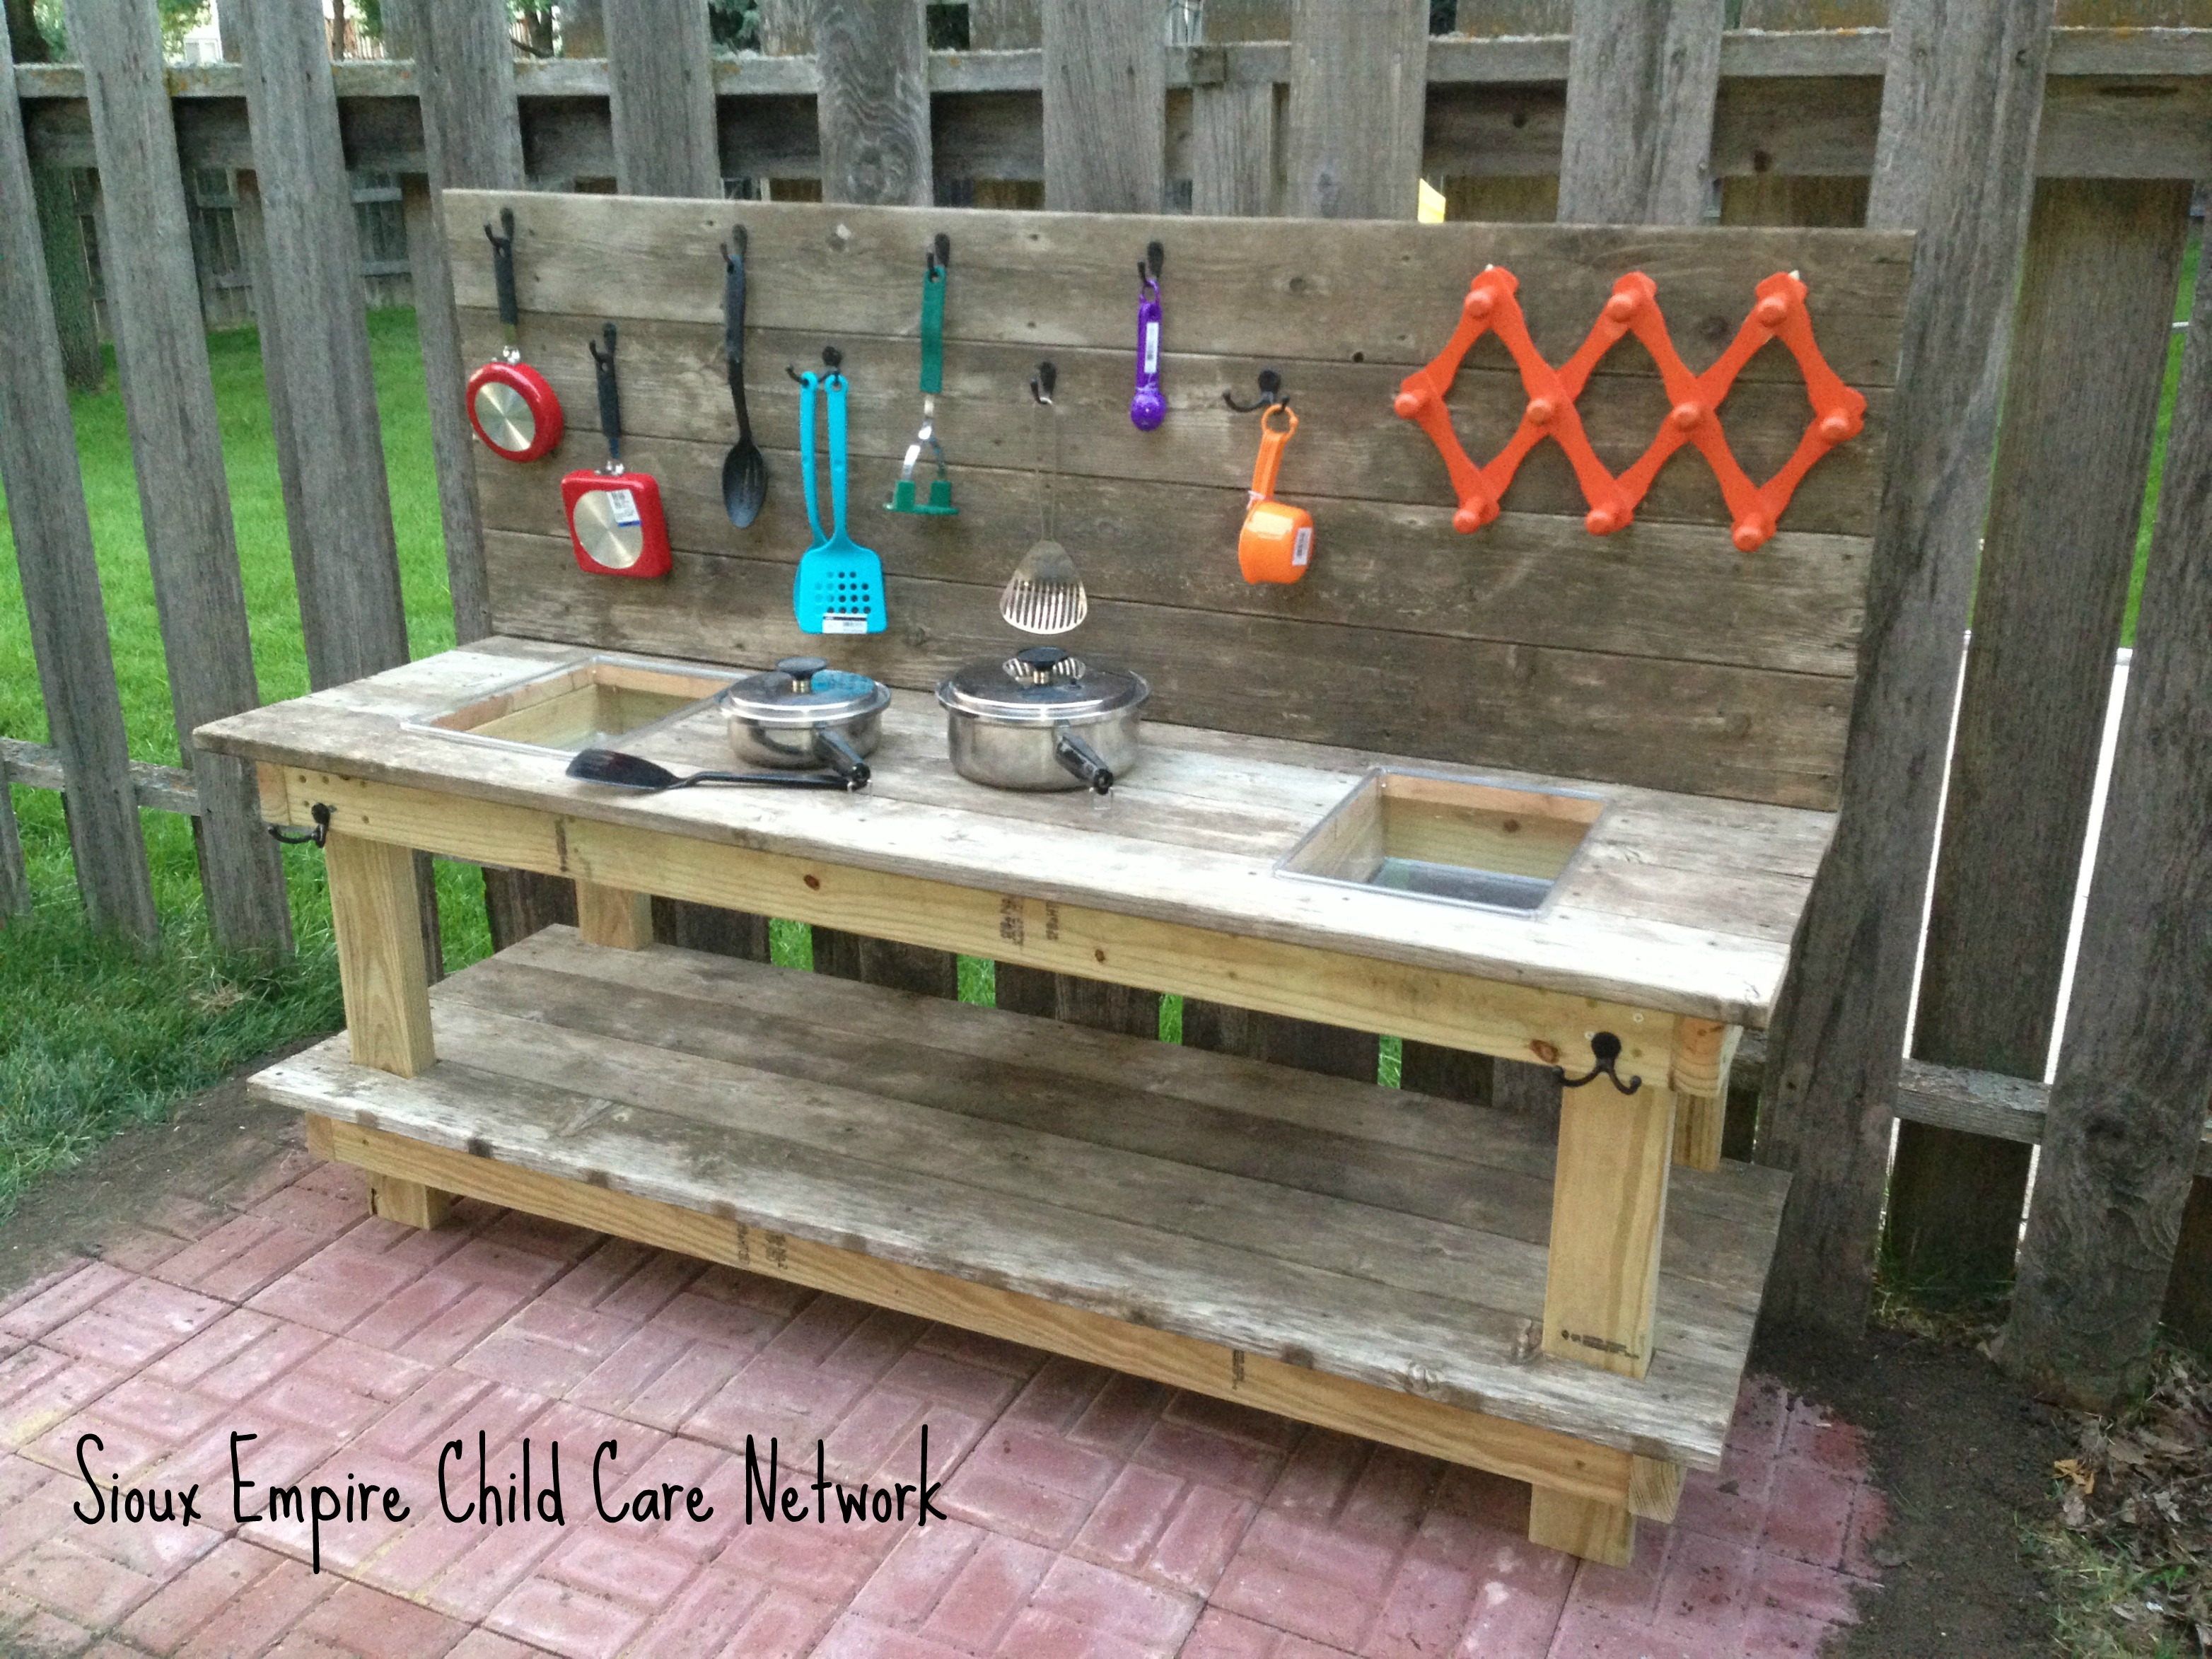 Mud Kitchen Fun – Sioux Empire Child Care Network